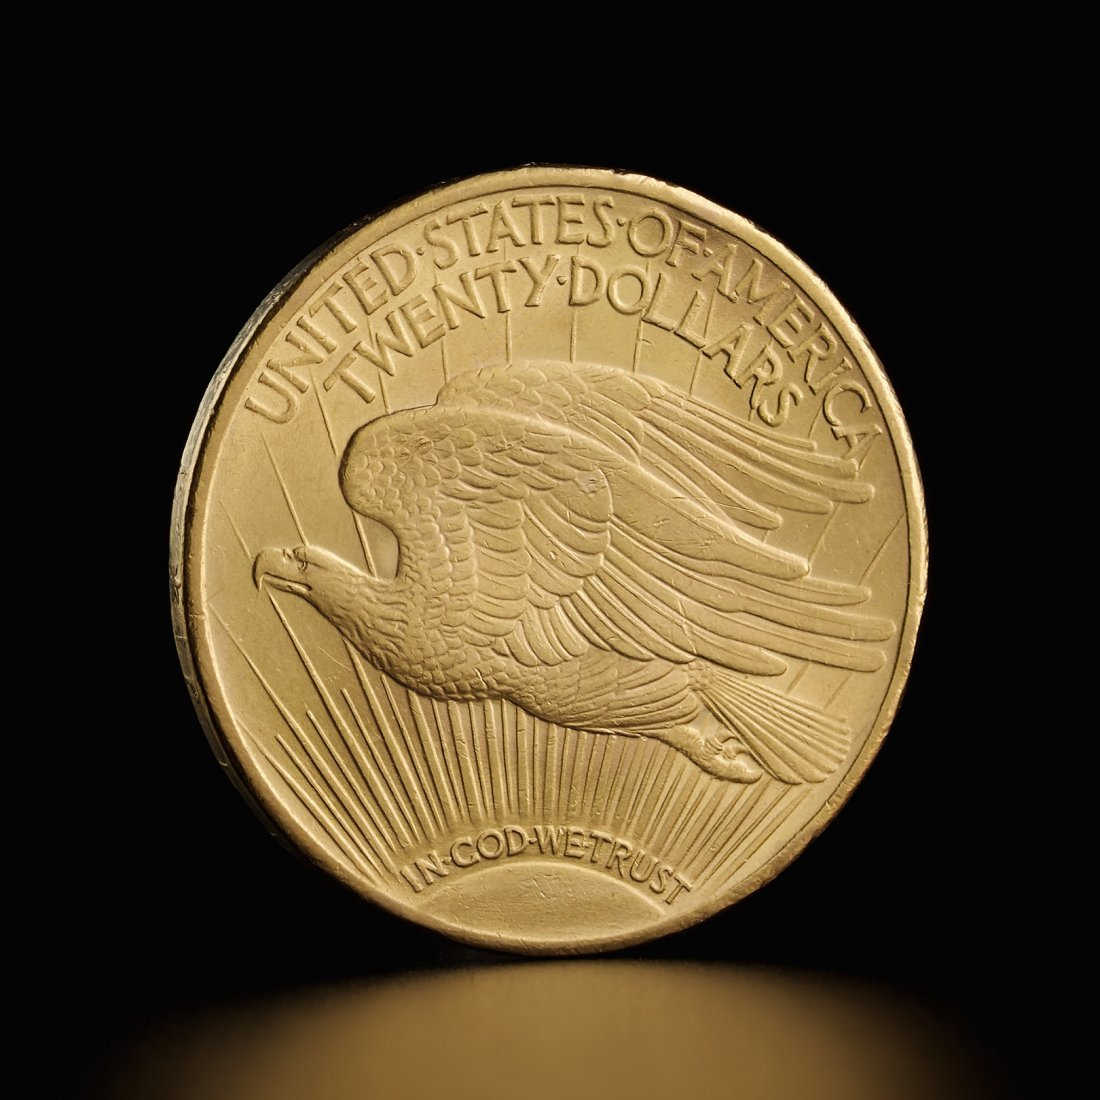 American Saint Gaudens Double Eagle gold coin